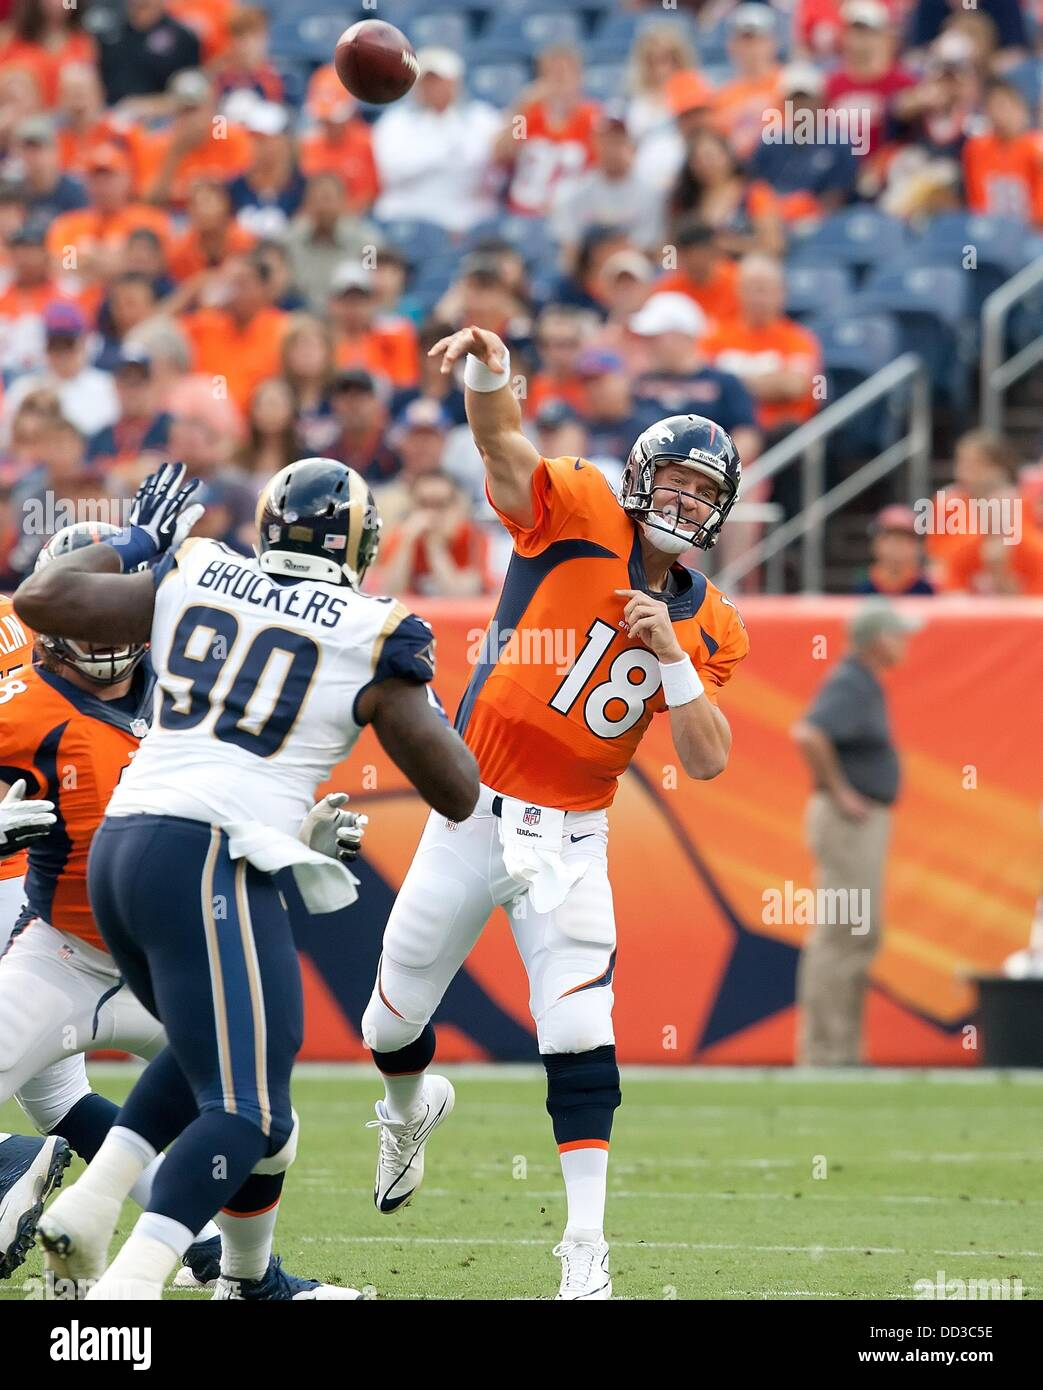 Denver, Colorado, USA. 24th Aug, 2013. Denver Broncos QB PEYTON MANNING airs a pass during the 1st. half at Sports - Stock Image